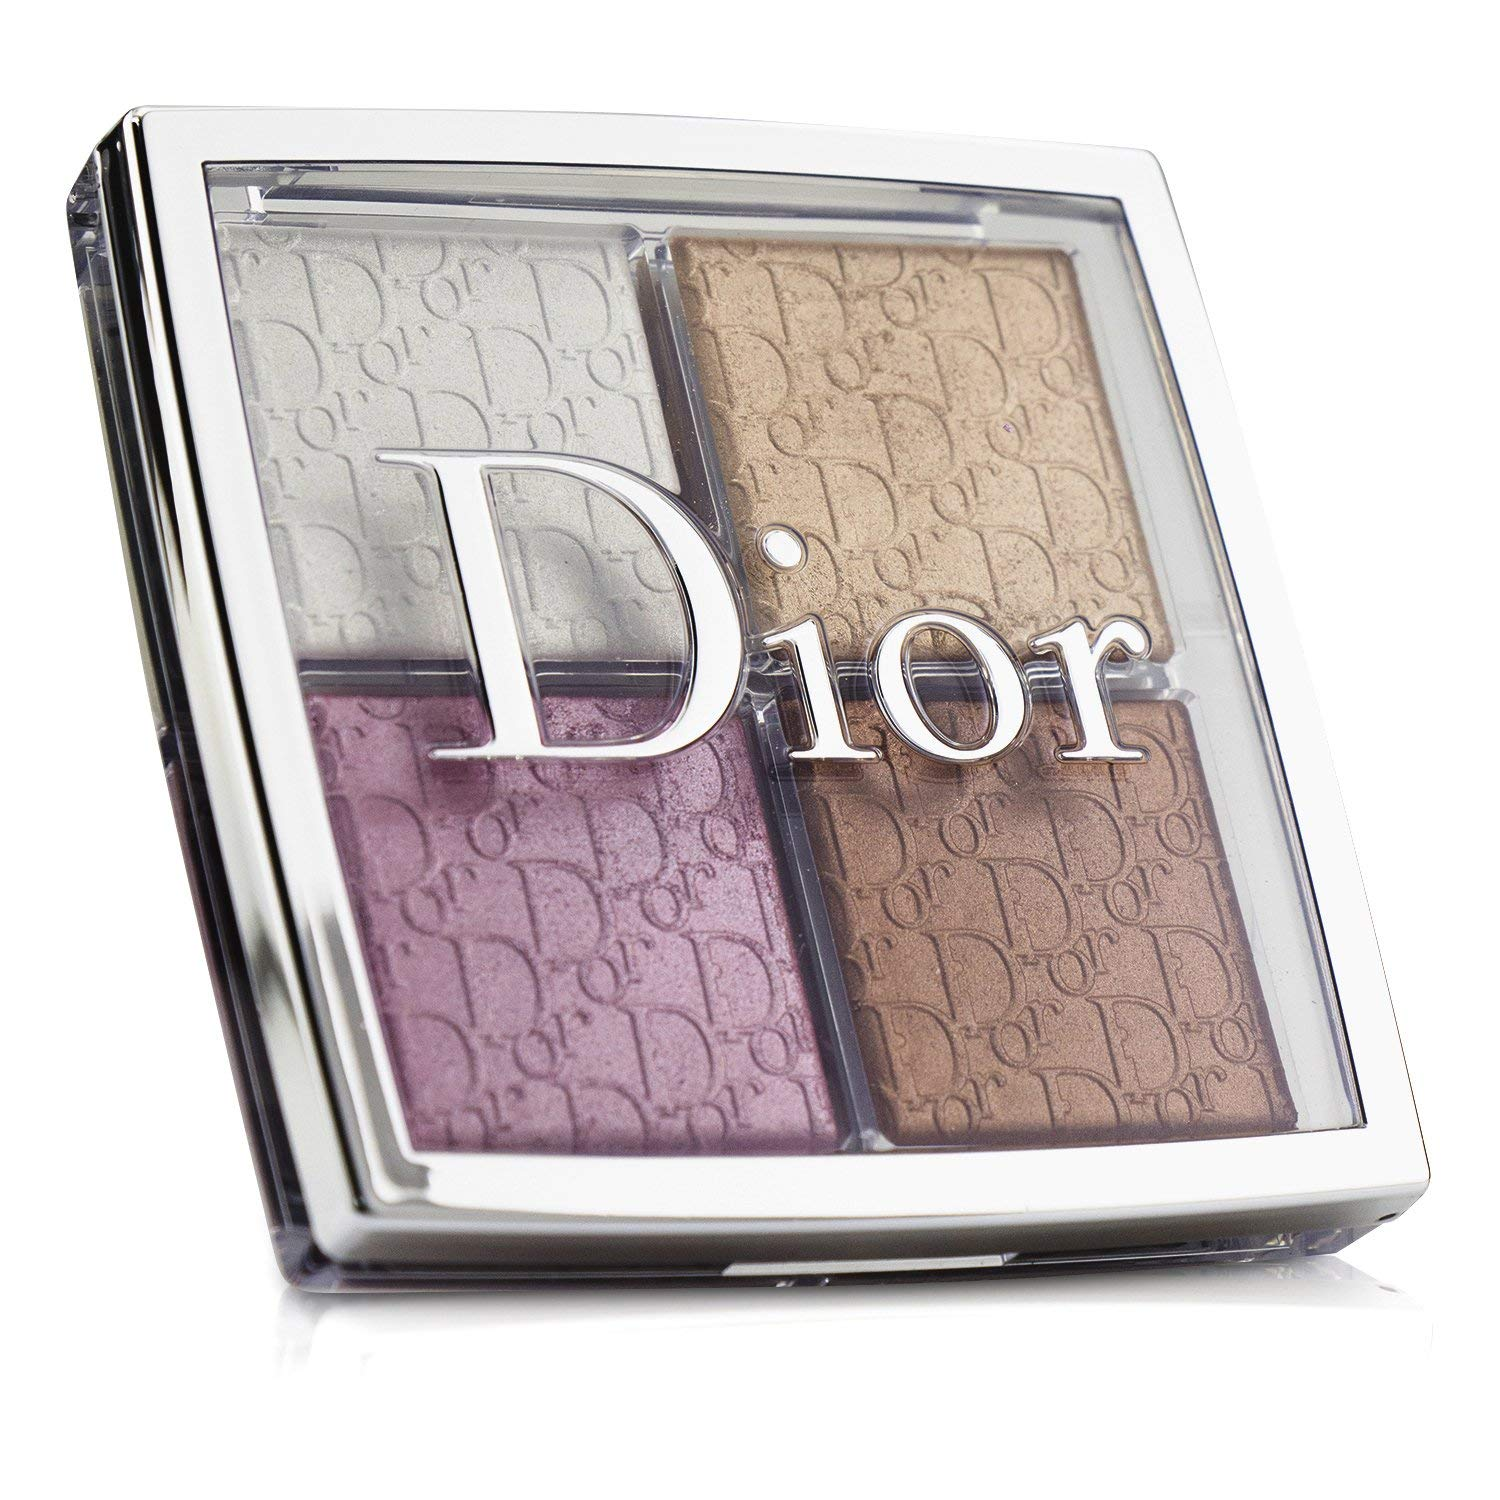 Dior 2018 Backstage Glow Highlighting Face Palette